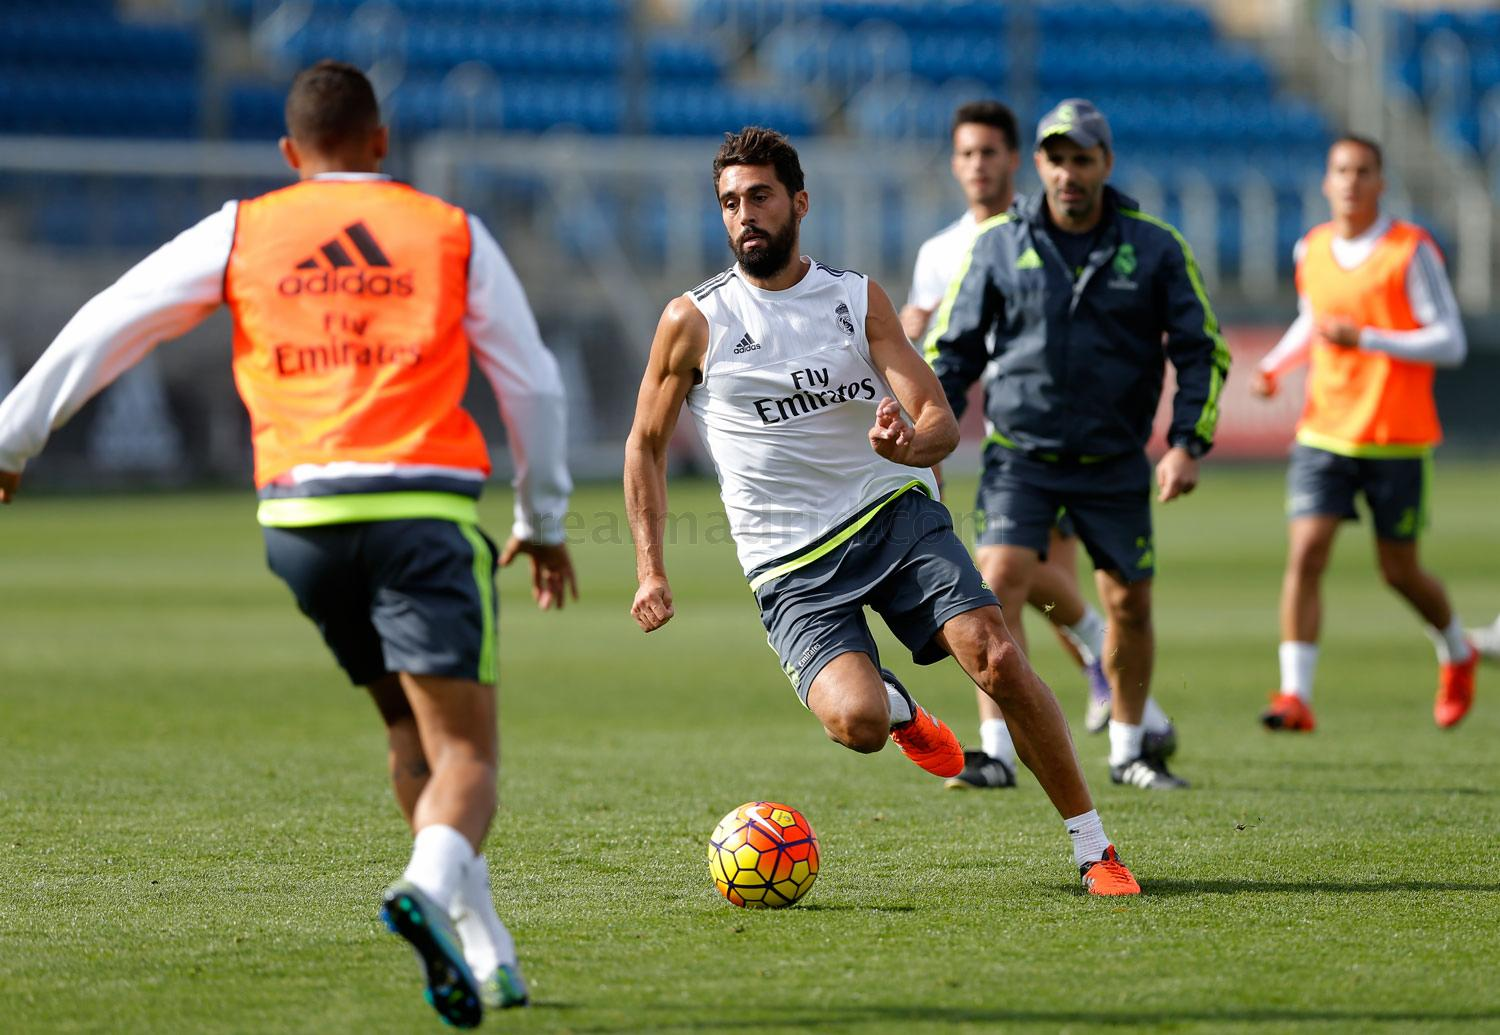 Real Madrid - Entrenamiento del Real Madrid - 28-10-2015